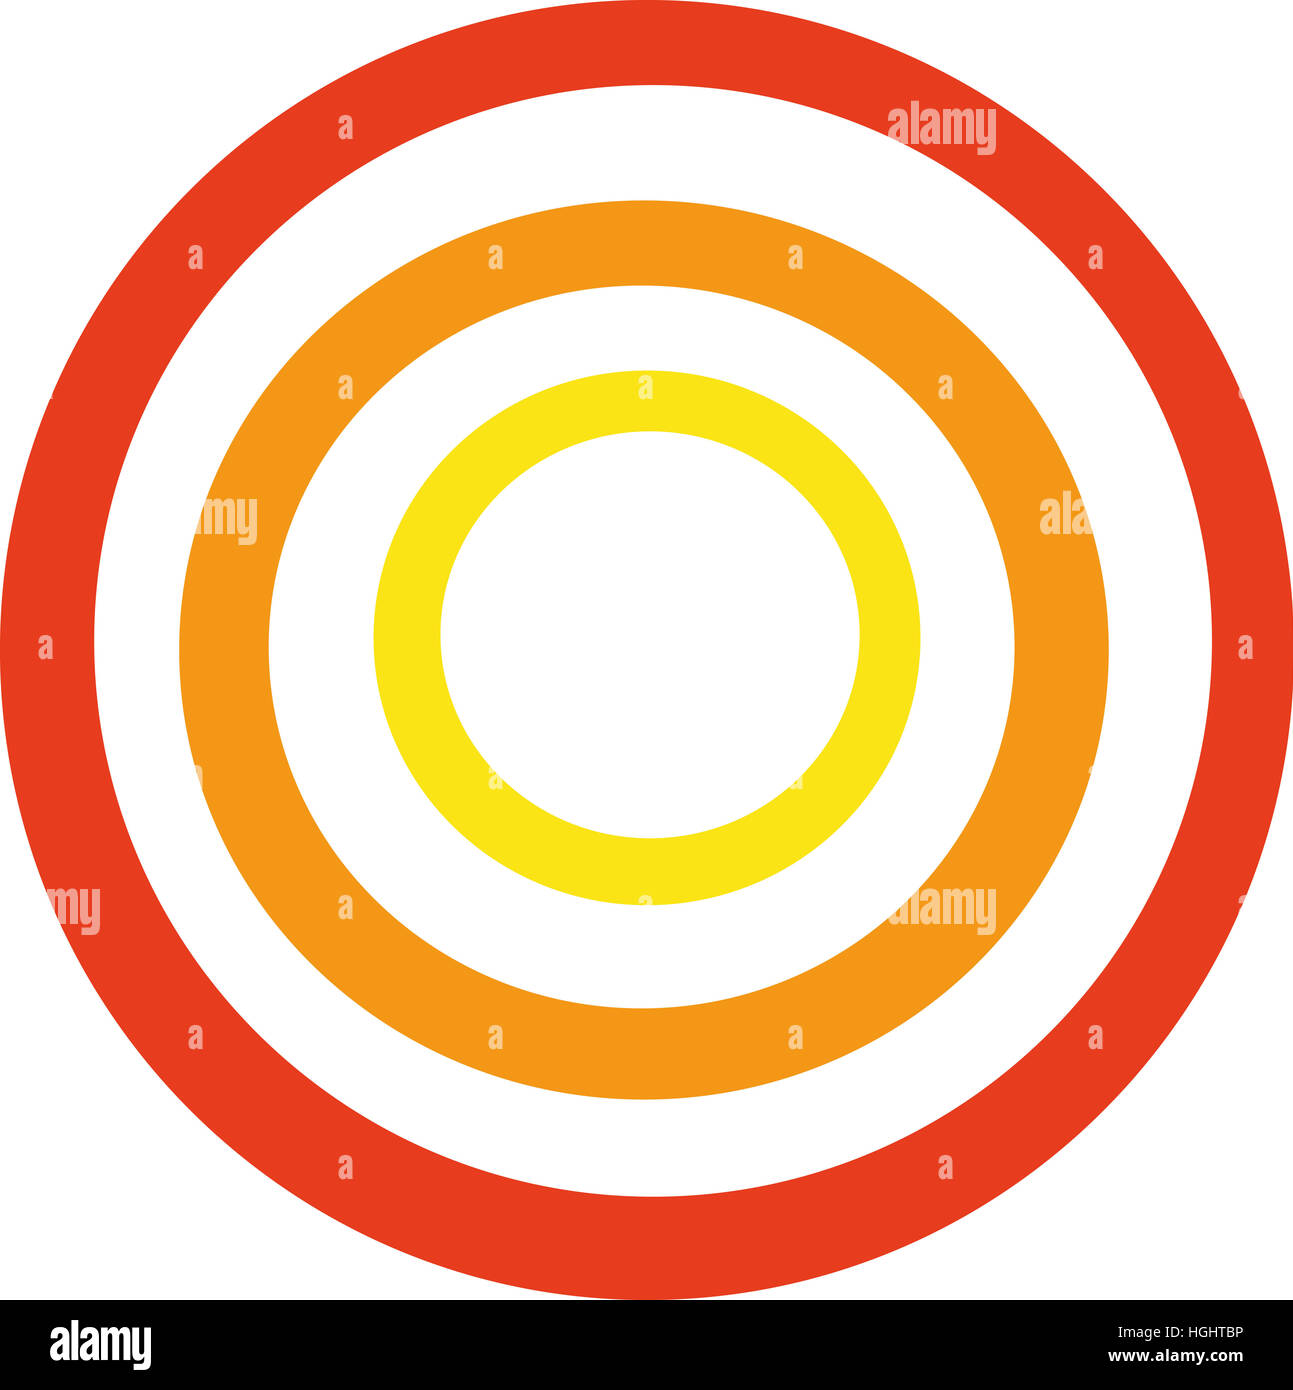 Circle shapes in rainbow colors - Stock Image